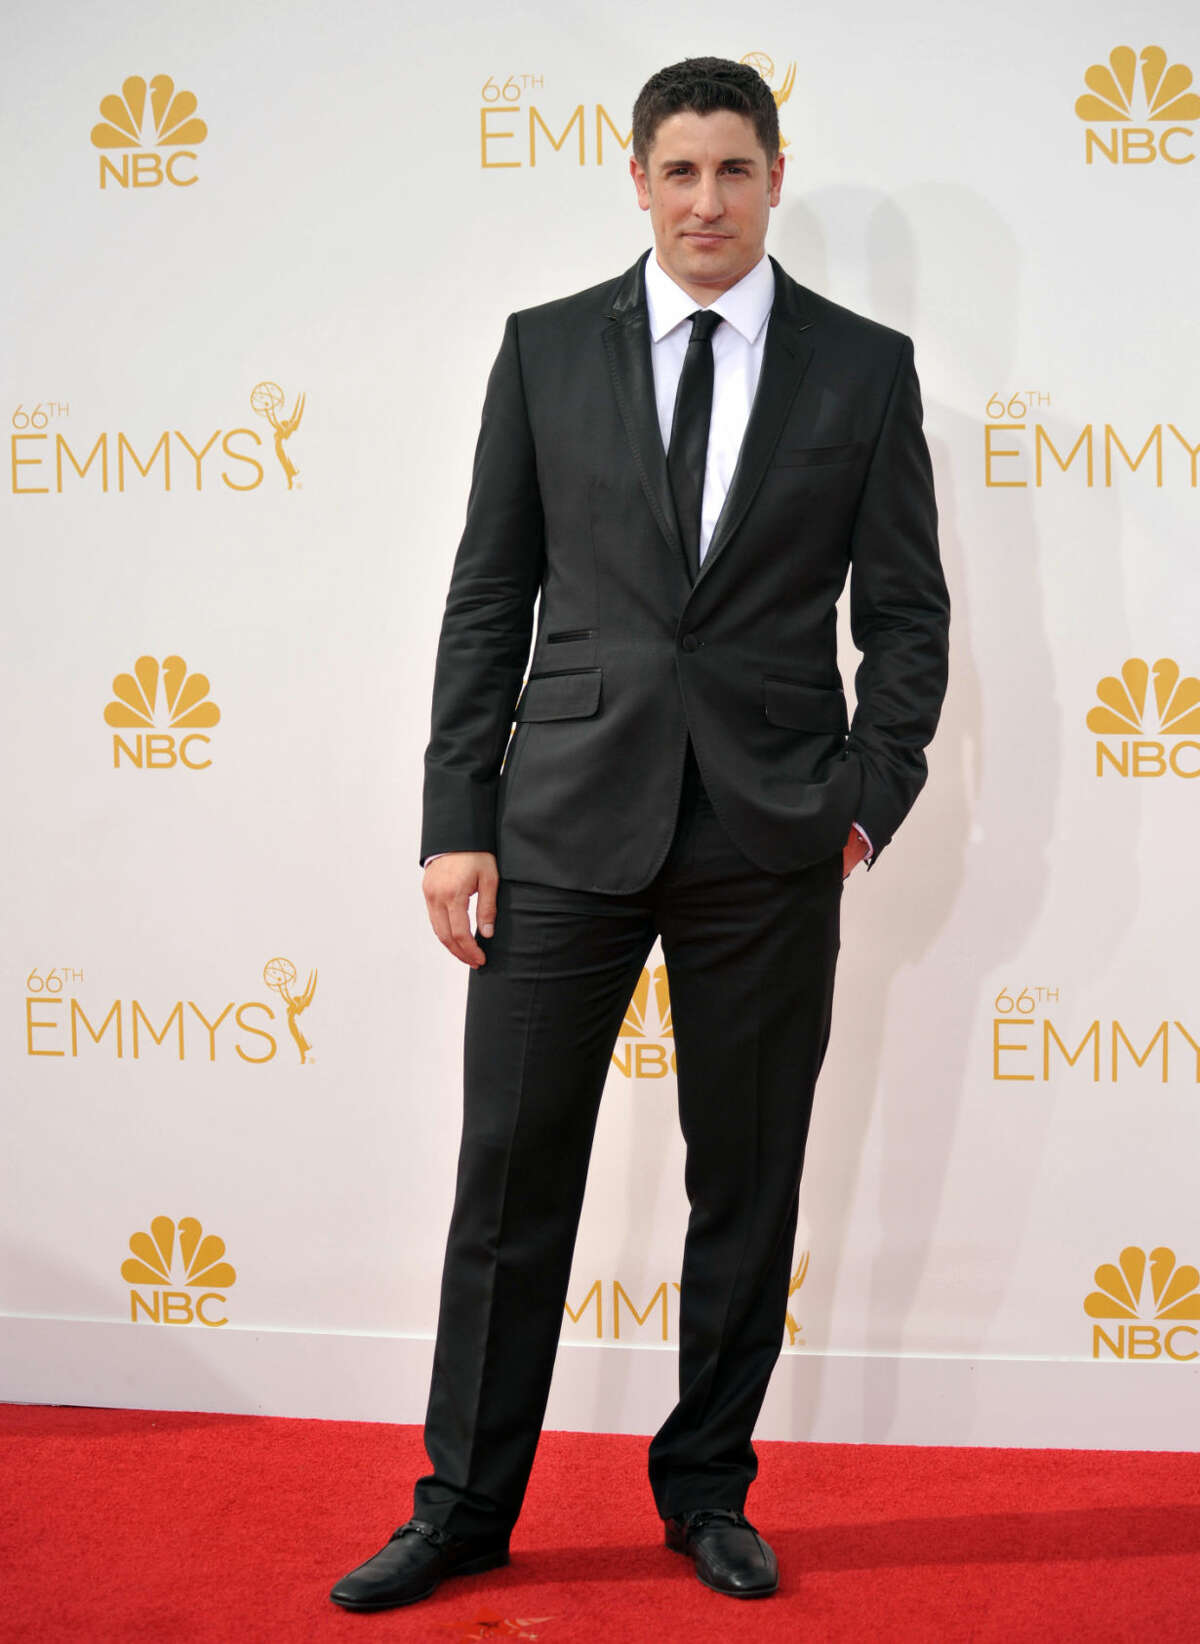 Jason Biggs arrives at the 66th Annual Primetime Emmy Awards at the Nokia Theatre L.A. Live on Monday, Aug. 25, 2014, in Los Angeles. (Photo by Richard Shotwell/Invision/AP)